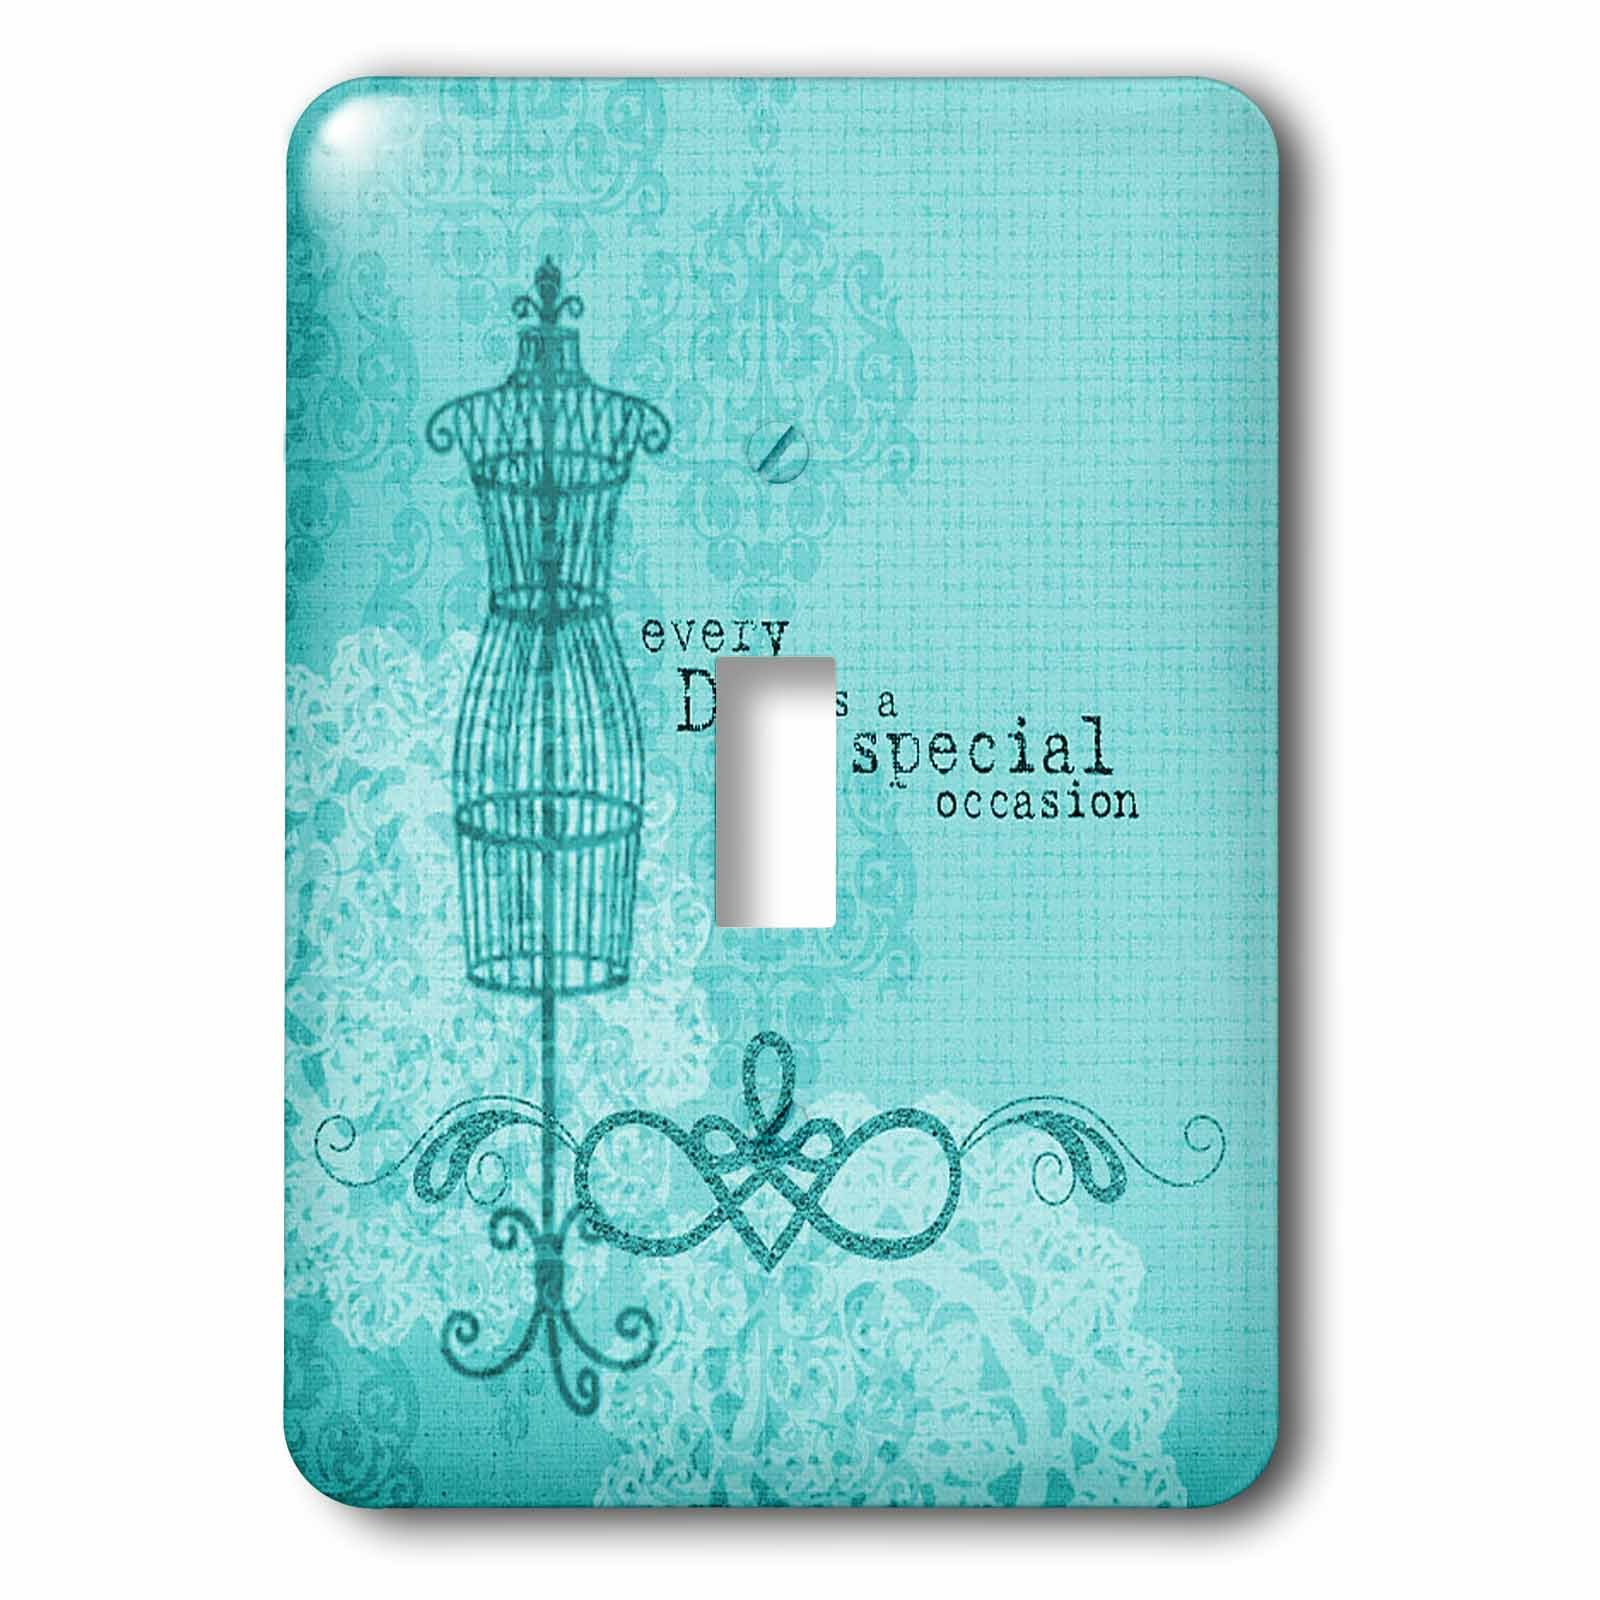 3dRose lsp_168037_1 Everyday is a Special Occasion in Turquoise Light Switch Cover by 3dRose